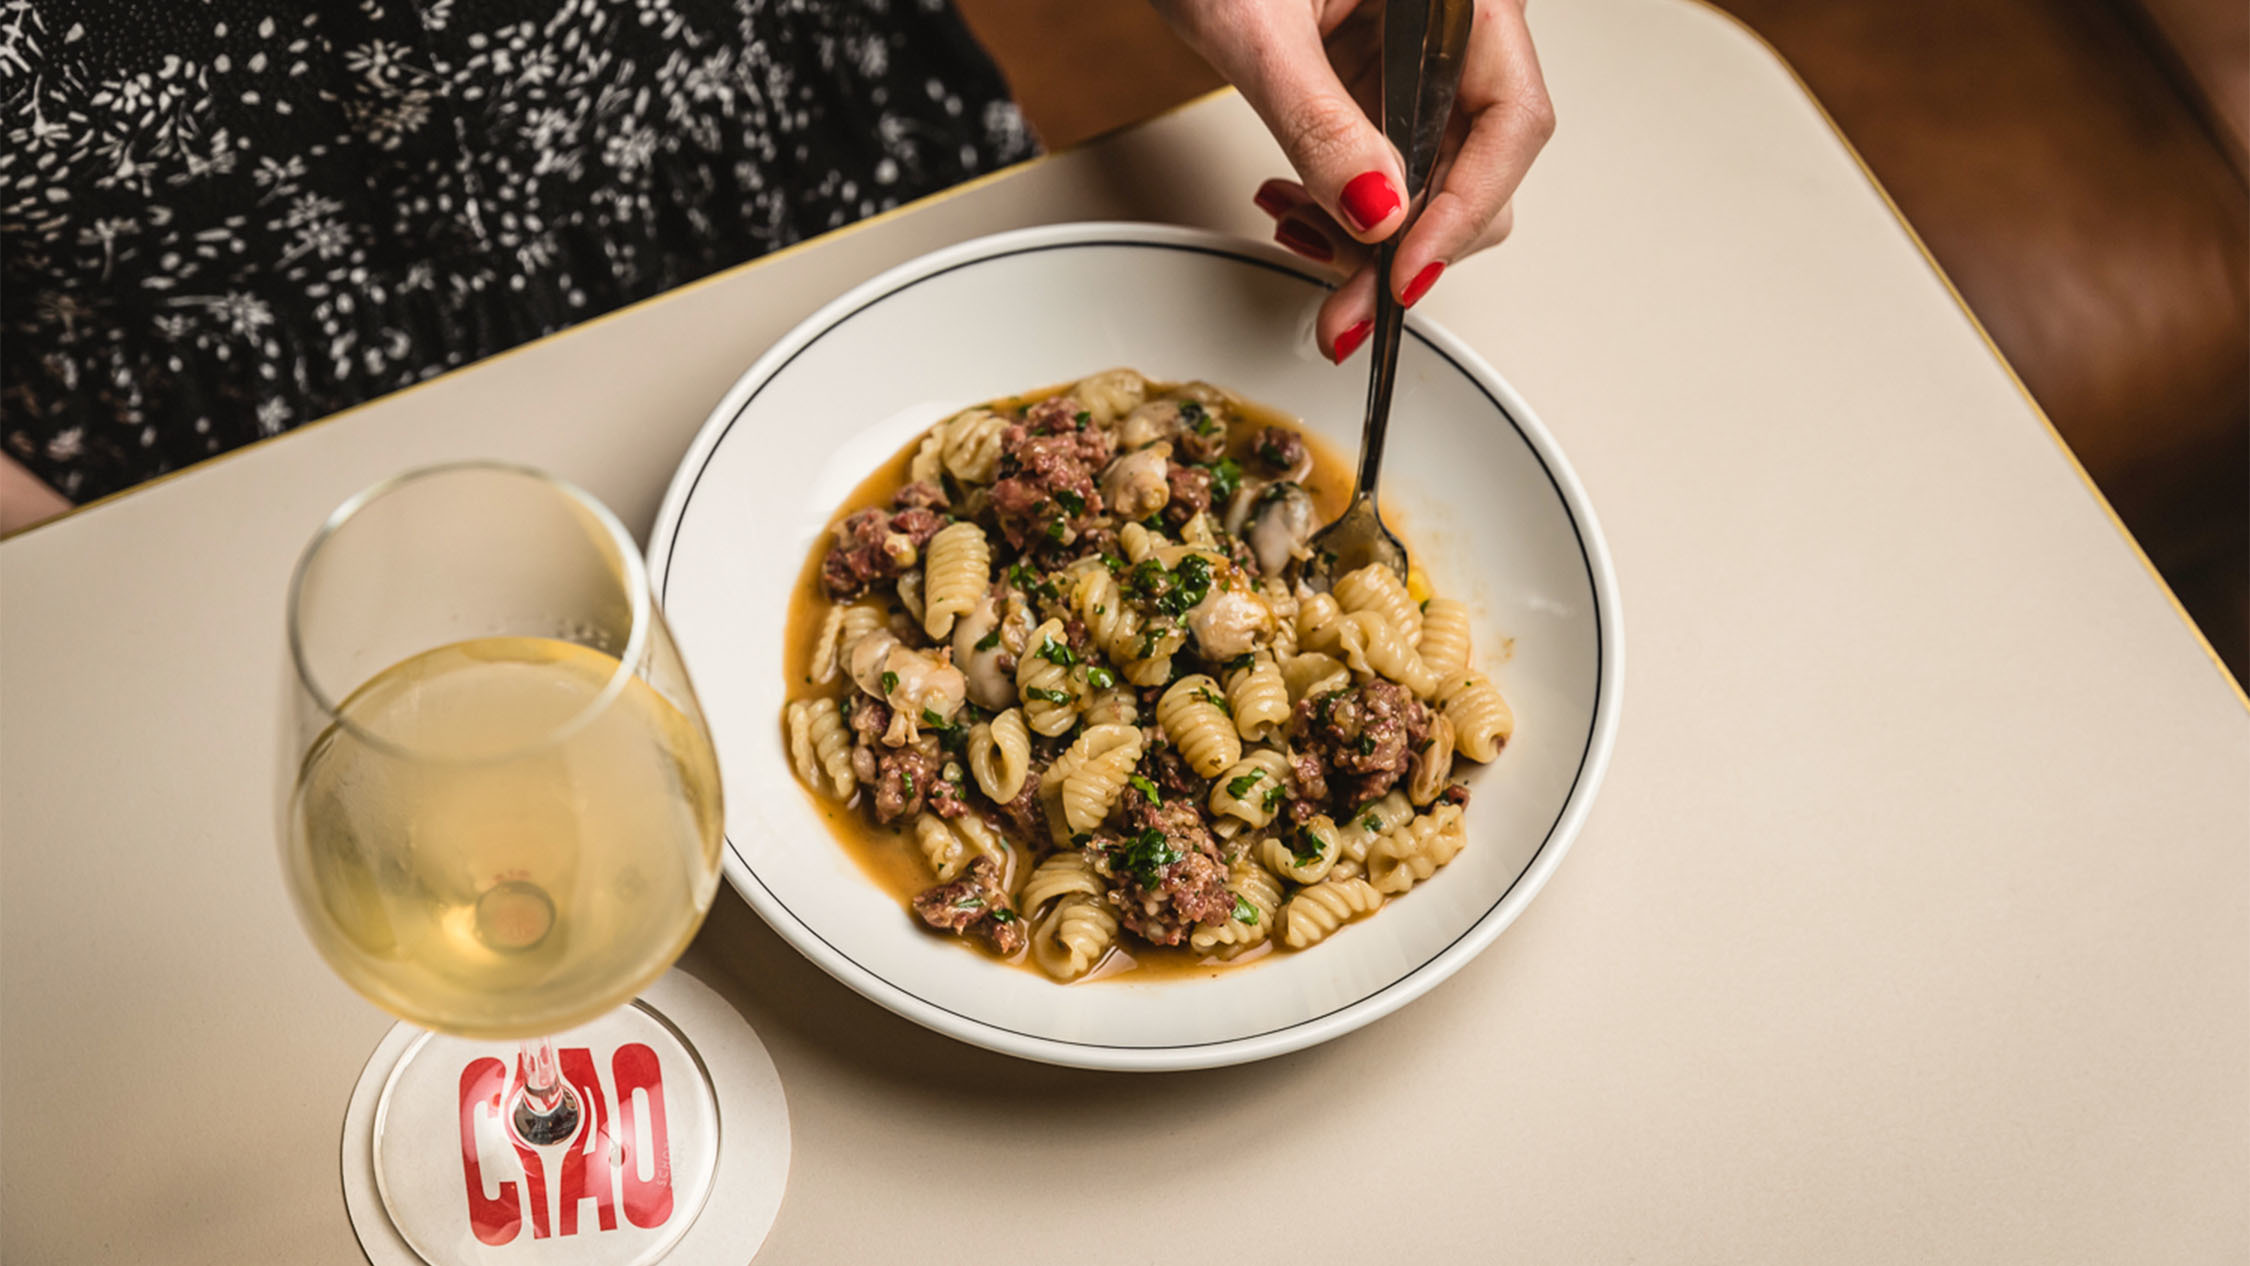 The 20 best places for pasta in Sydney